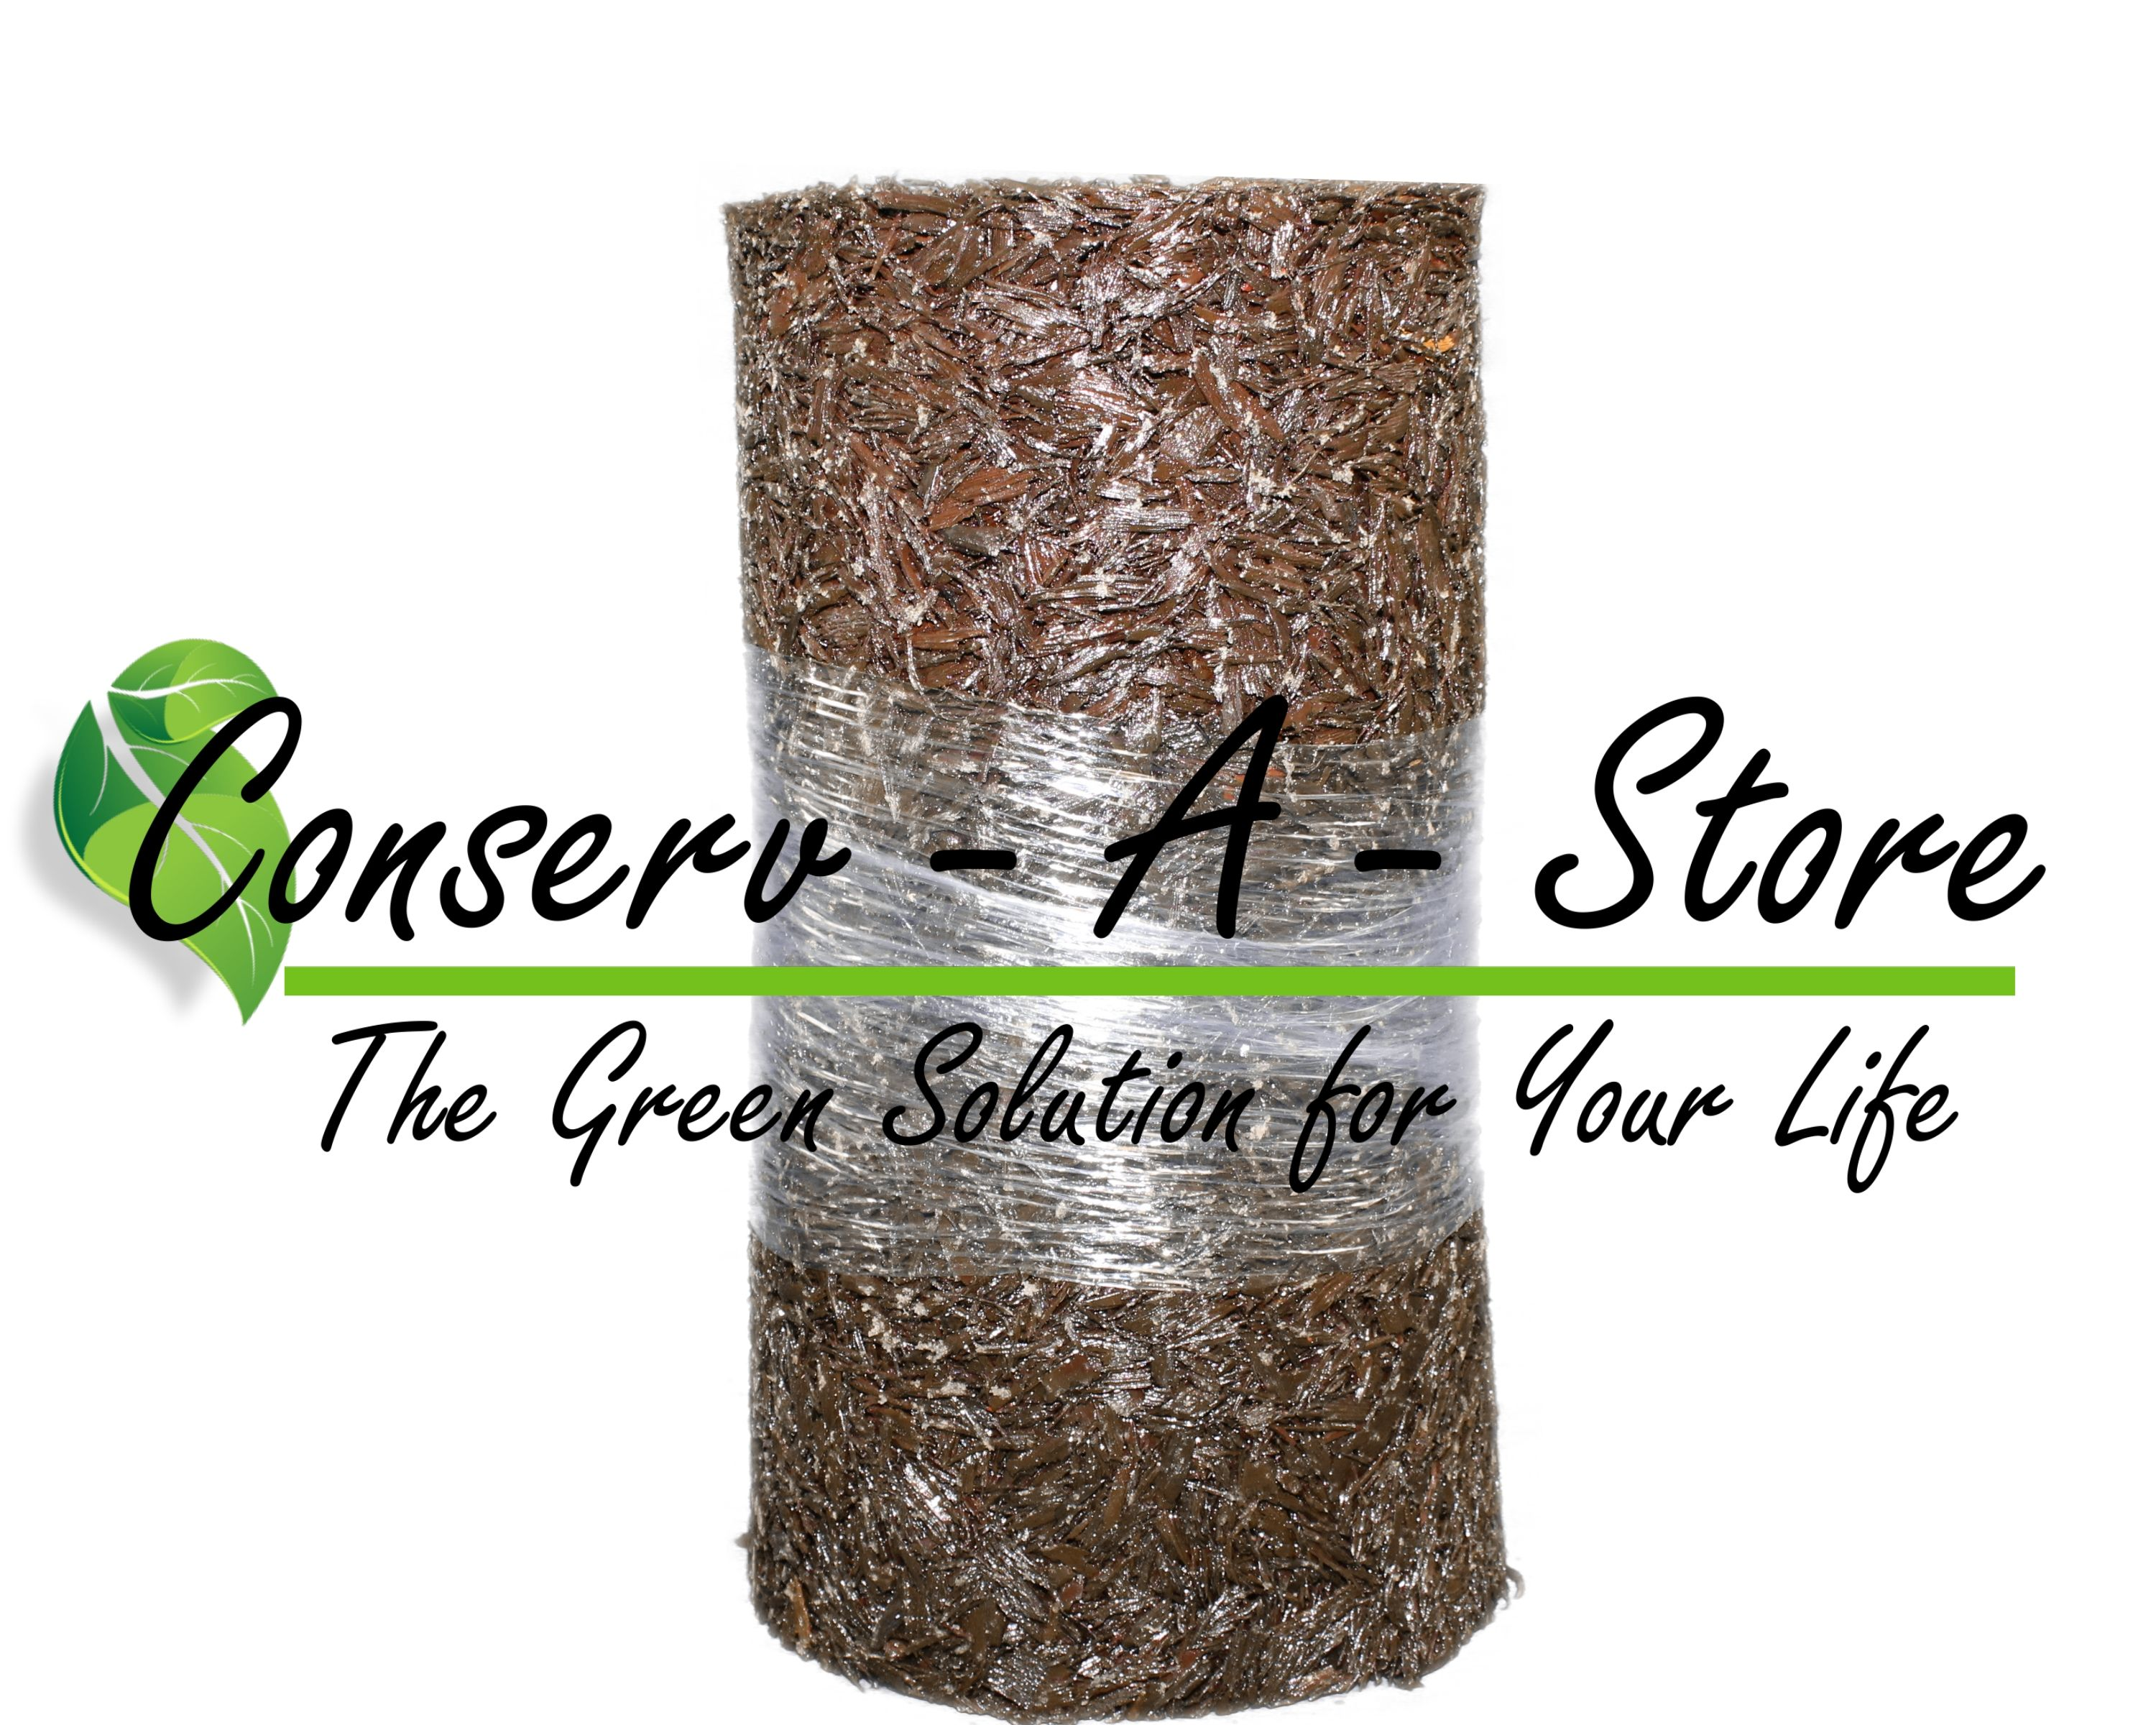 2ft By 8ft Recycled Rubber Tire Walkway By Conserv A Store Rubber Mulch Recycled Rubber Mulch